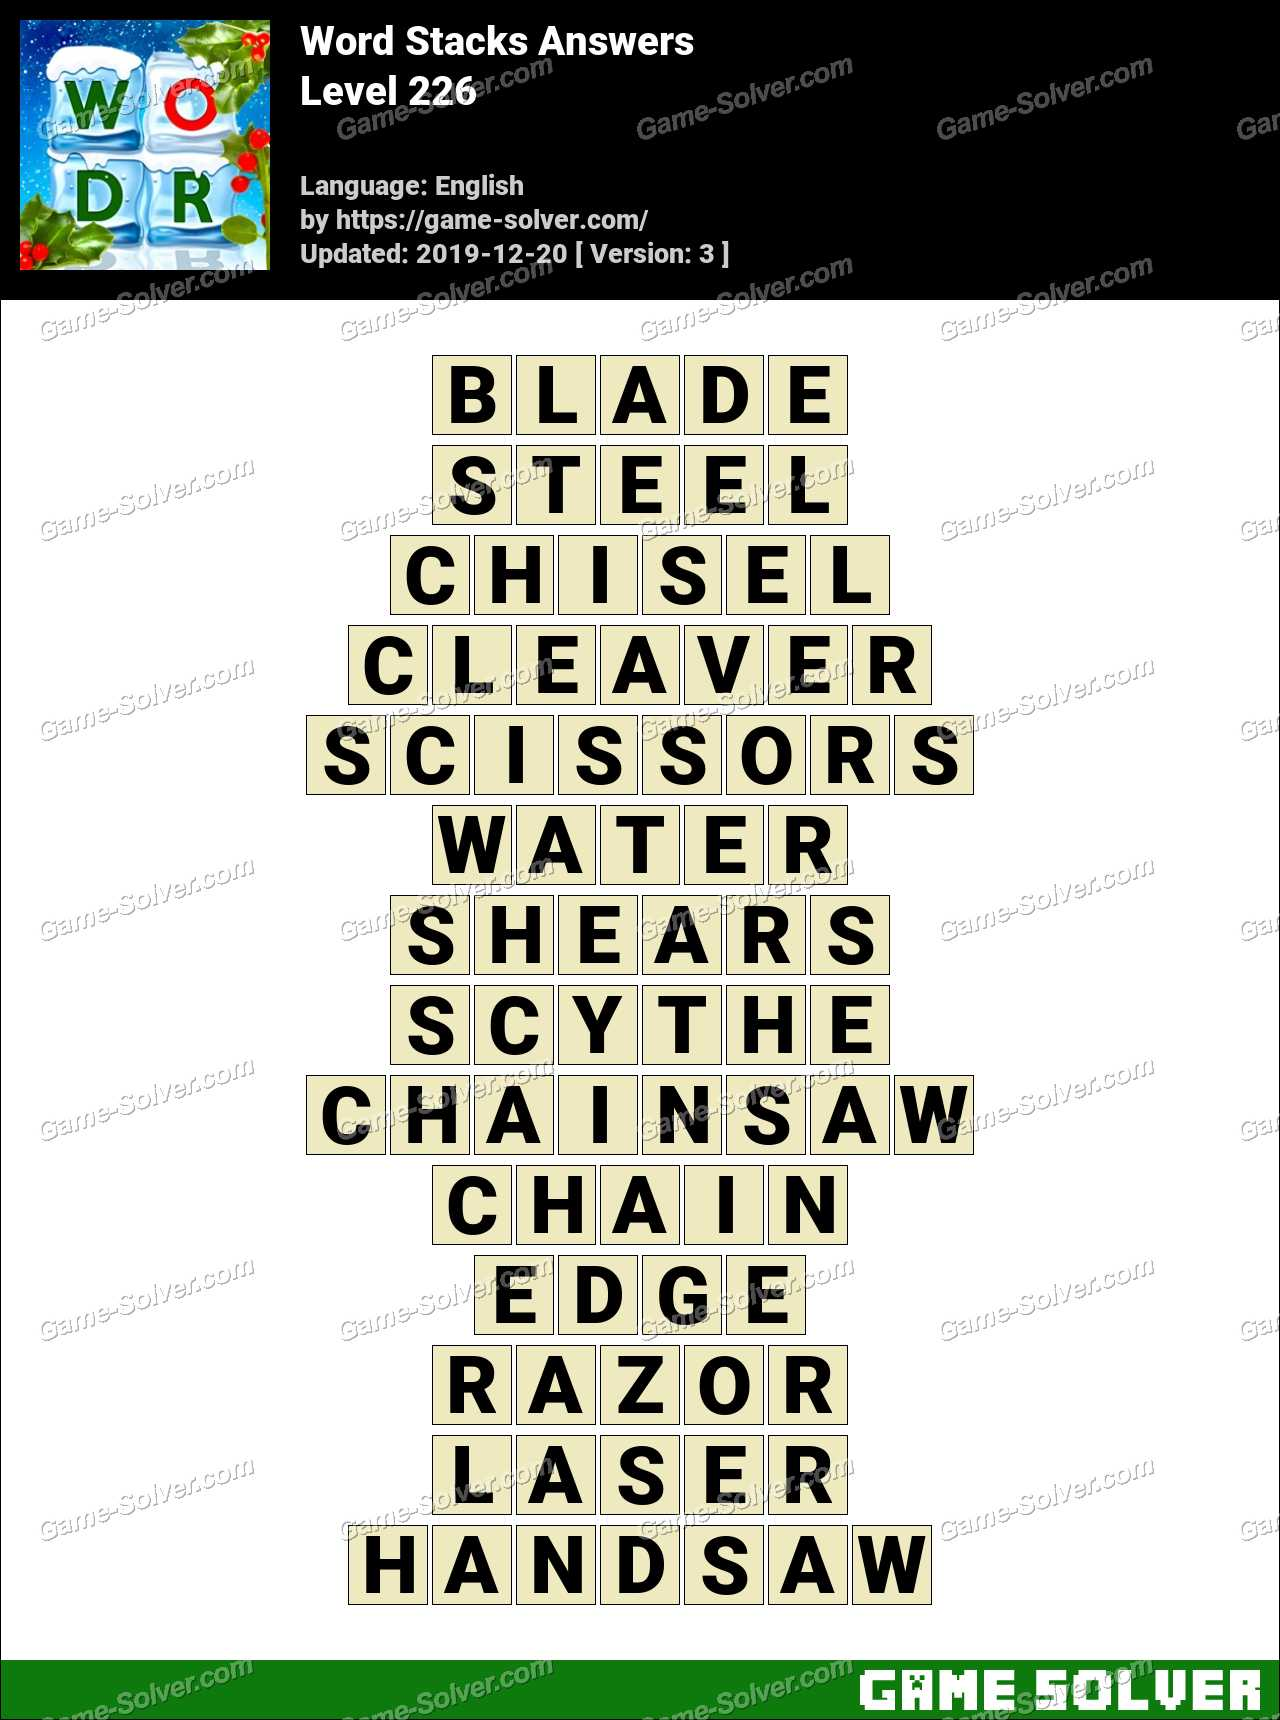 Word Stacks Level 226 Answers